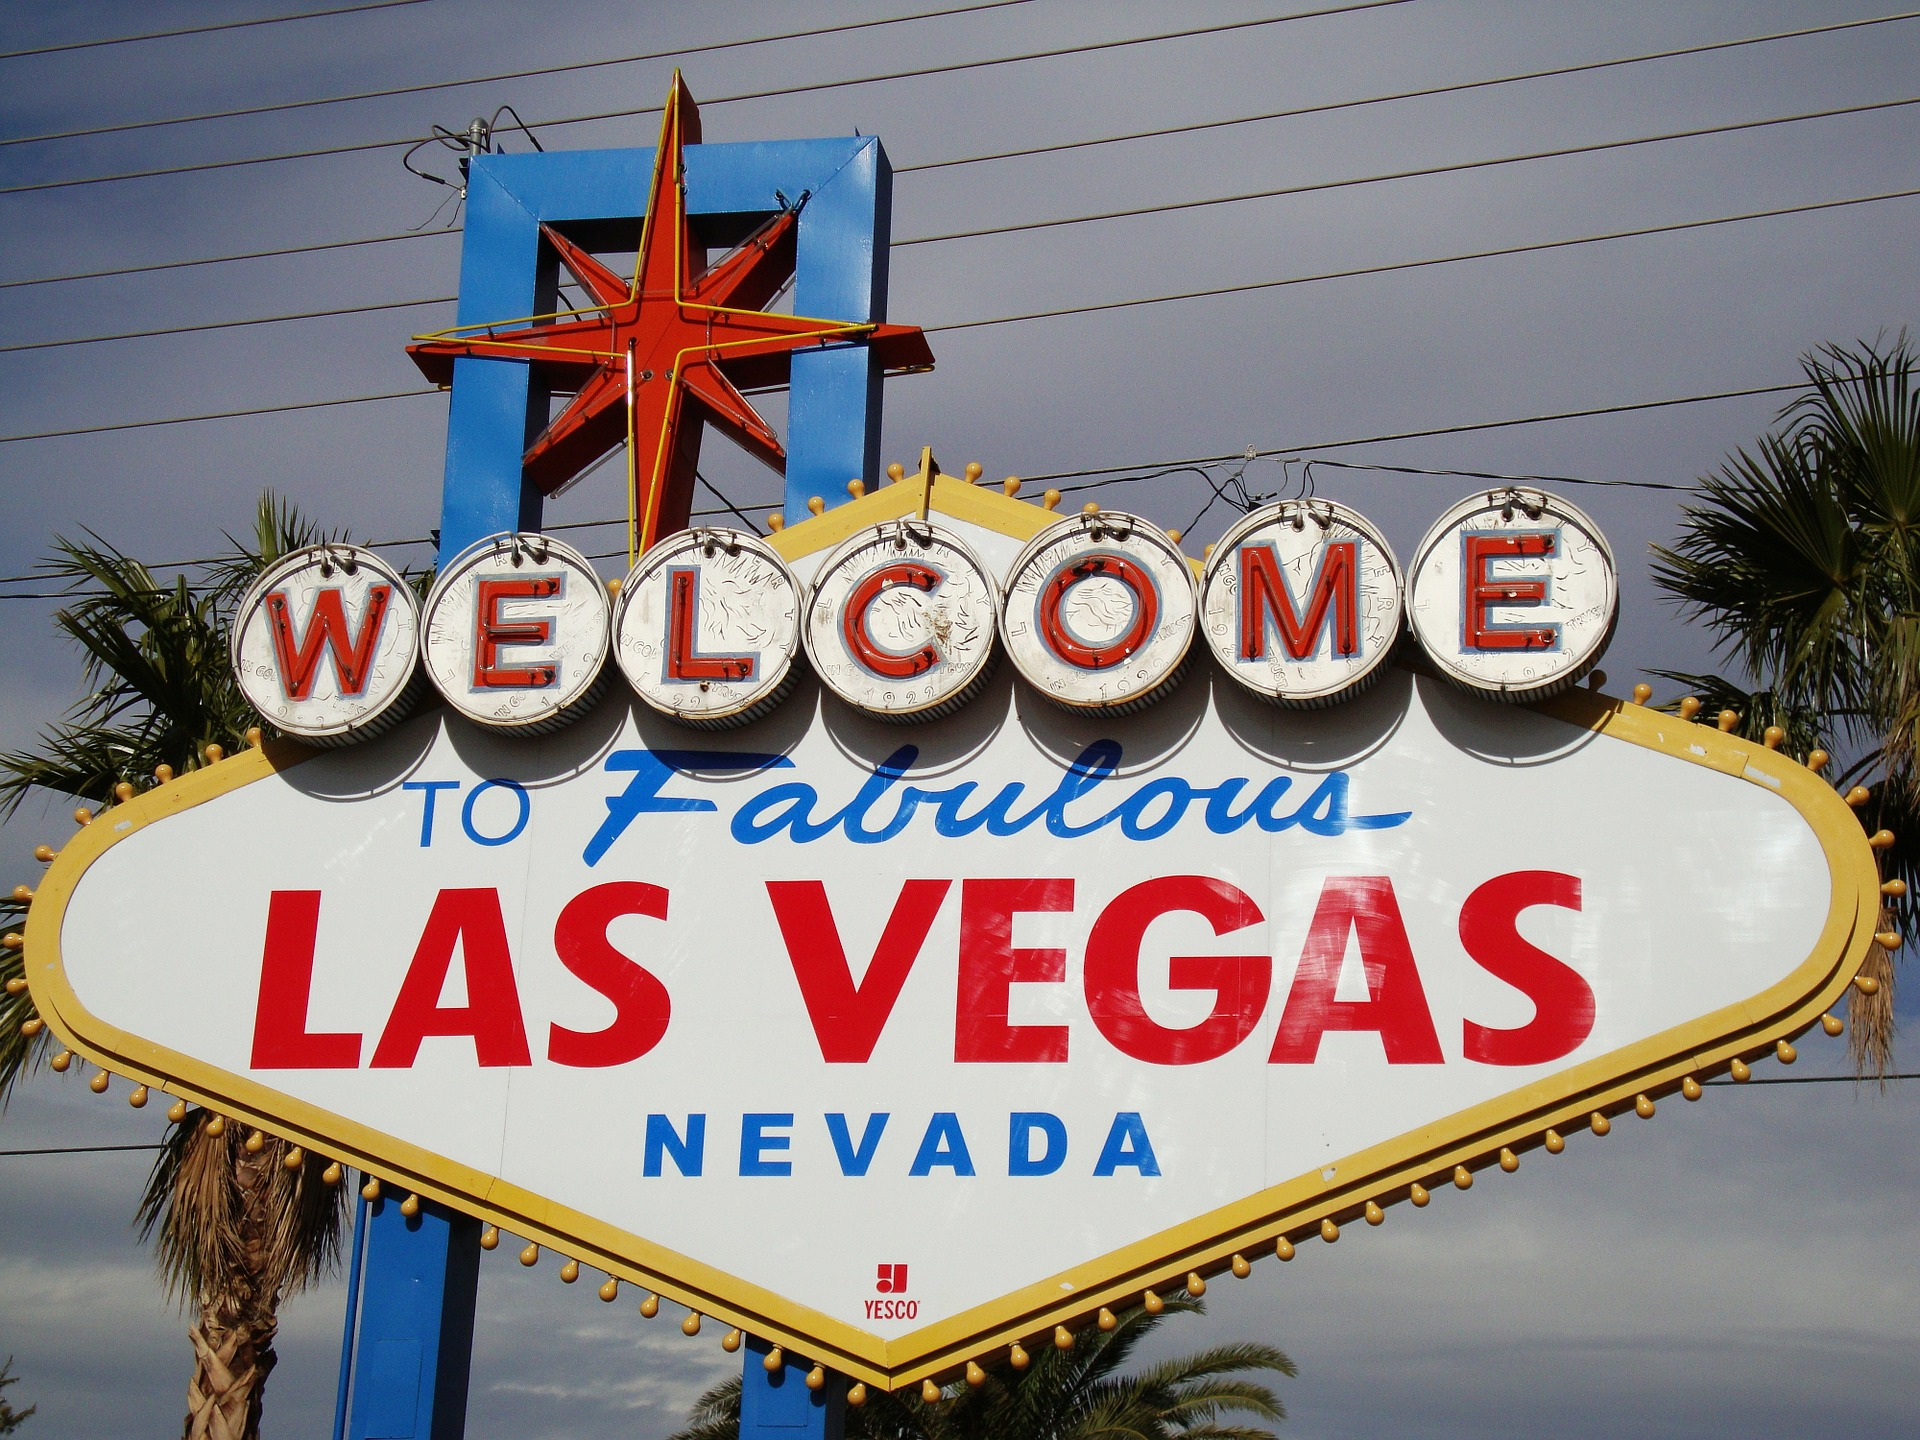 'Welcome to Las Vegas' sign